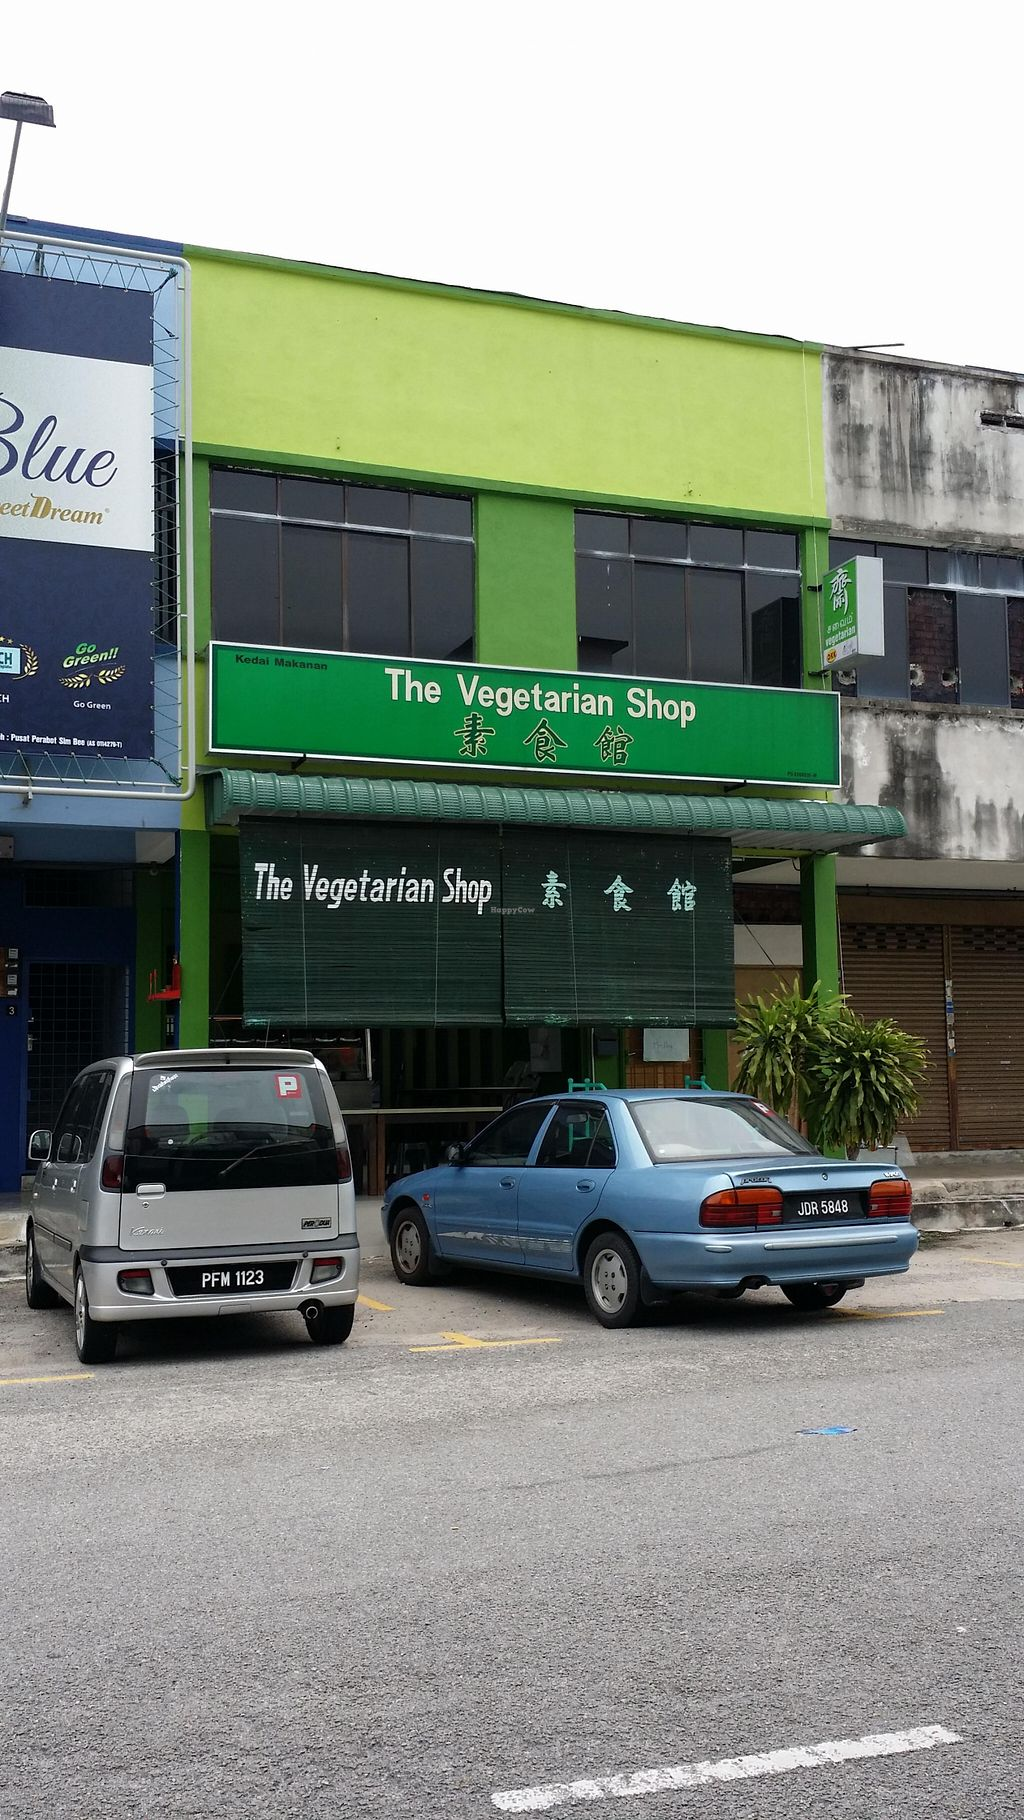 """Photo of The Vegetarian Shop  by <a href=""""/members/profile/walter007"""">walter007</a> <br/>Shop <br/> August 15, 2015  - <a href='/contact/abuse/image/60070/113747'>Report</a>"""